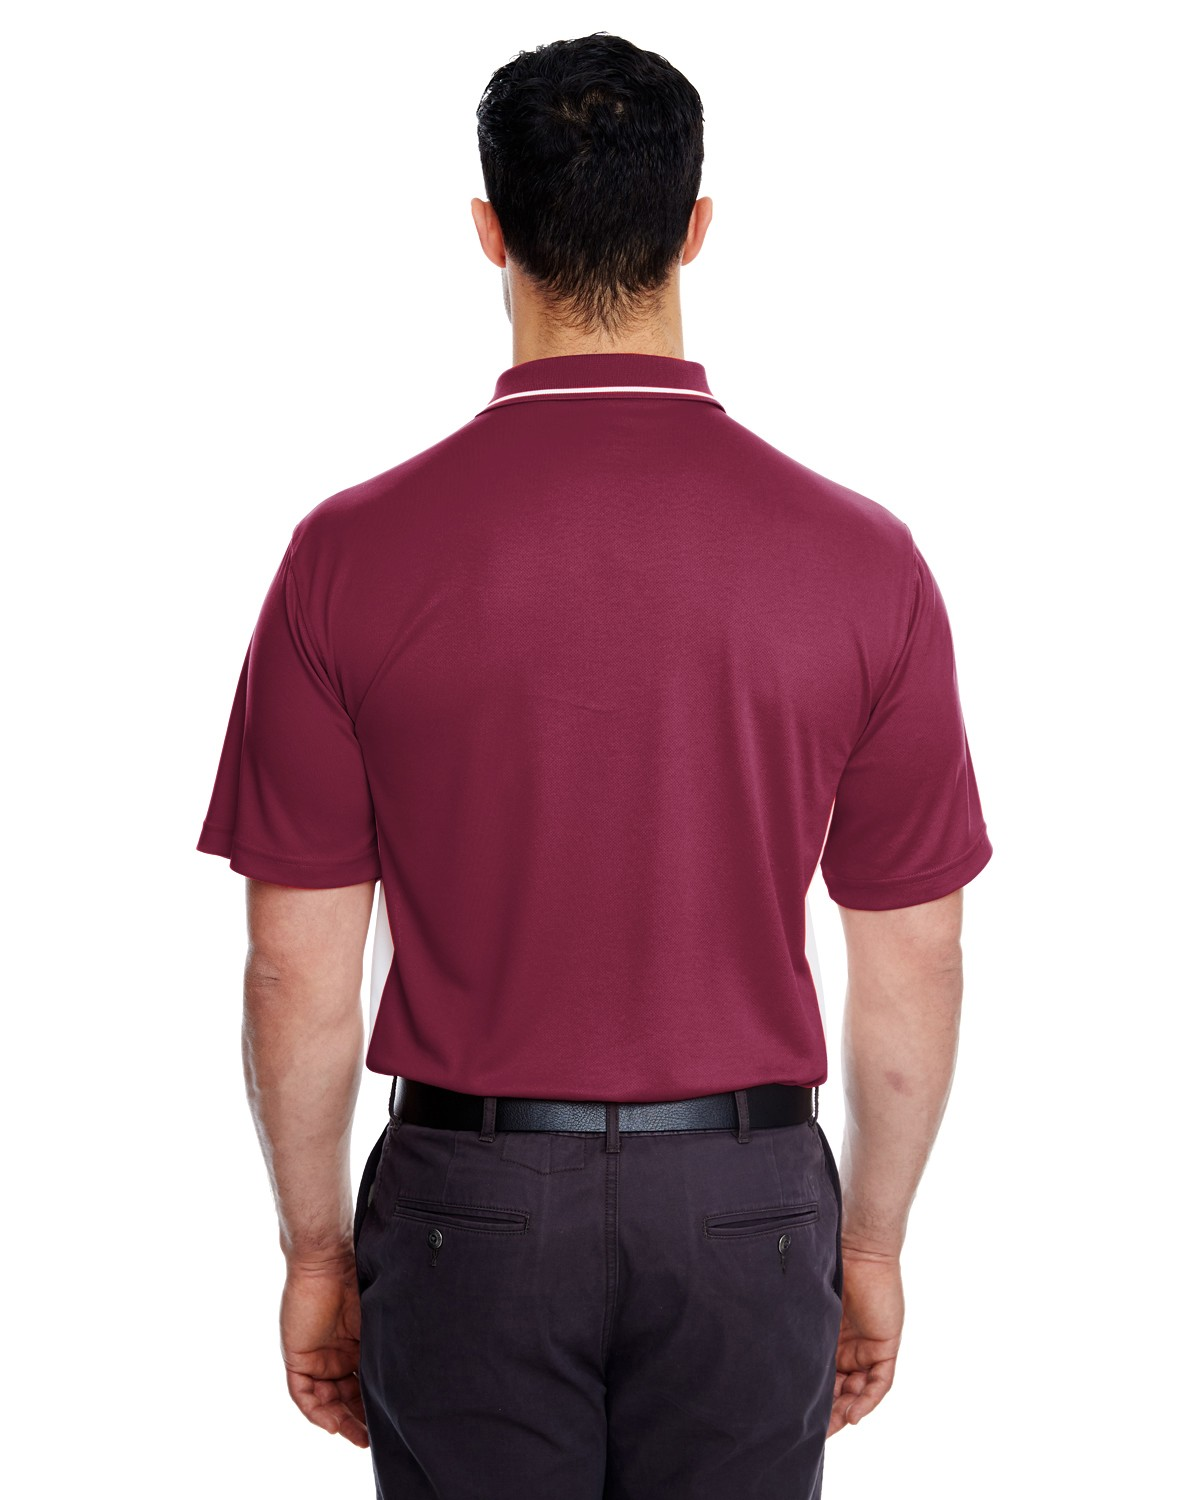 8406 UltraClub MAROON/WHITE